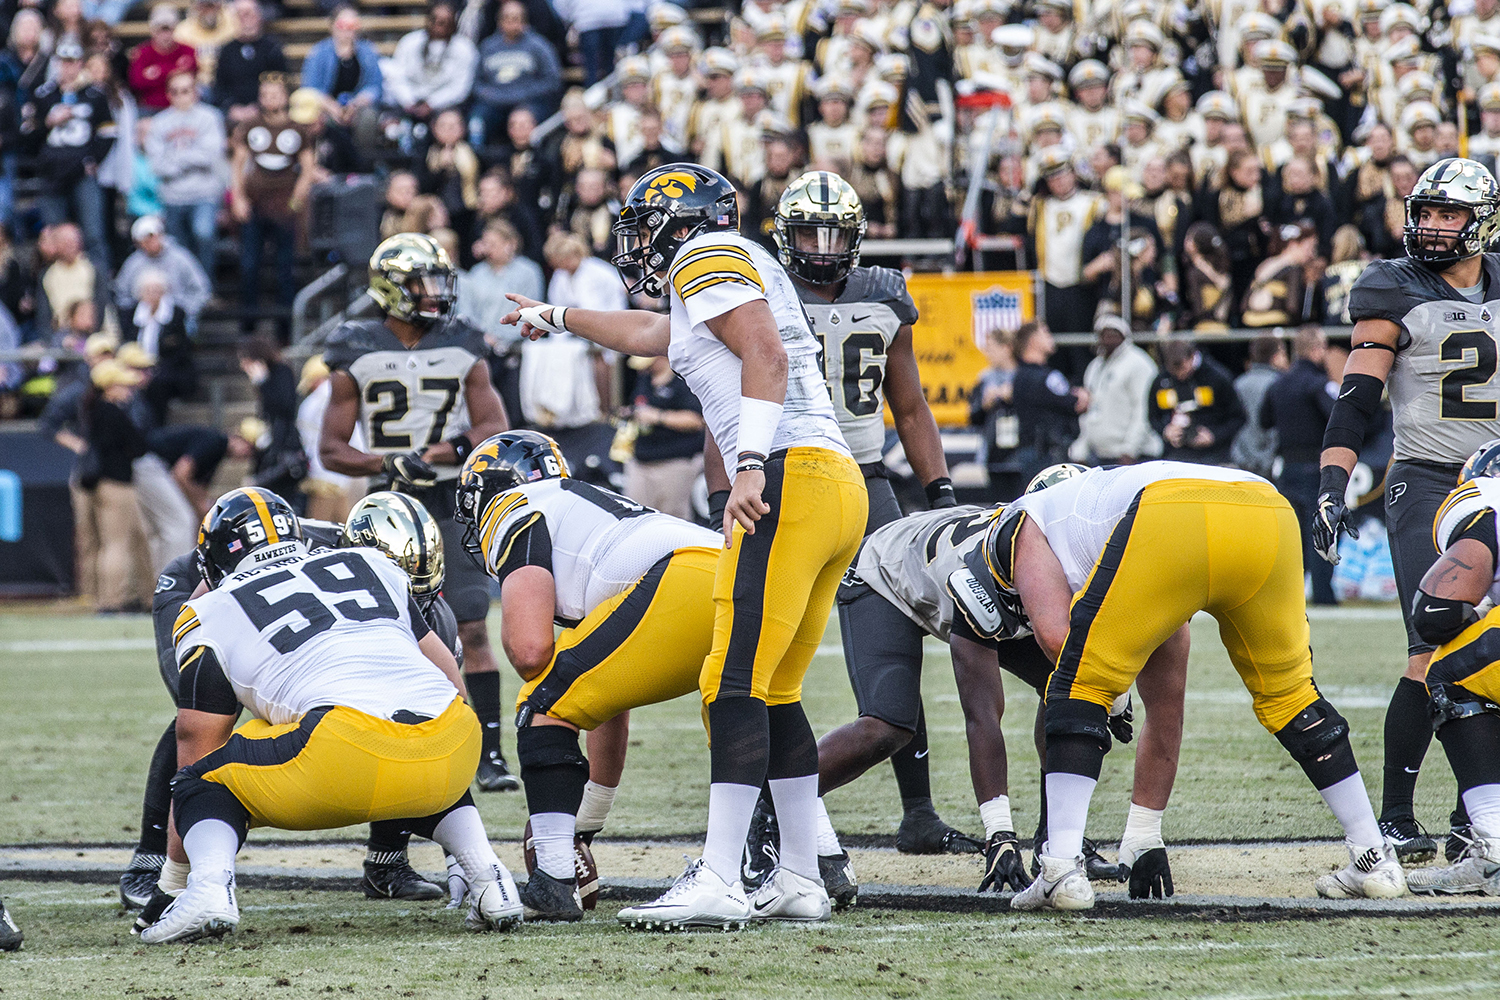 Iowa+quarterback+Nate+Stanley+calls+out+a+play+during+the+Iowa%2FPurdue+game+at+Ross-Ade+Stadium+in+West+Lafayette%2C+Ind.+on+Saturday%2C+November+3%2C+2018.+The+Boilermakers+defeated+the+Hawkeyes+38-36.+